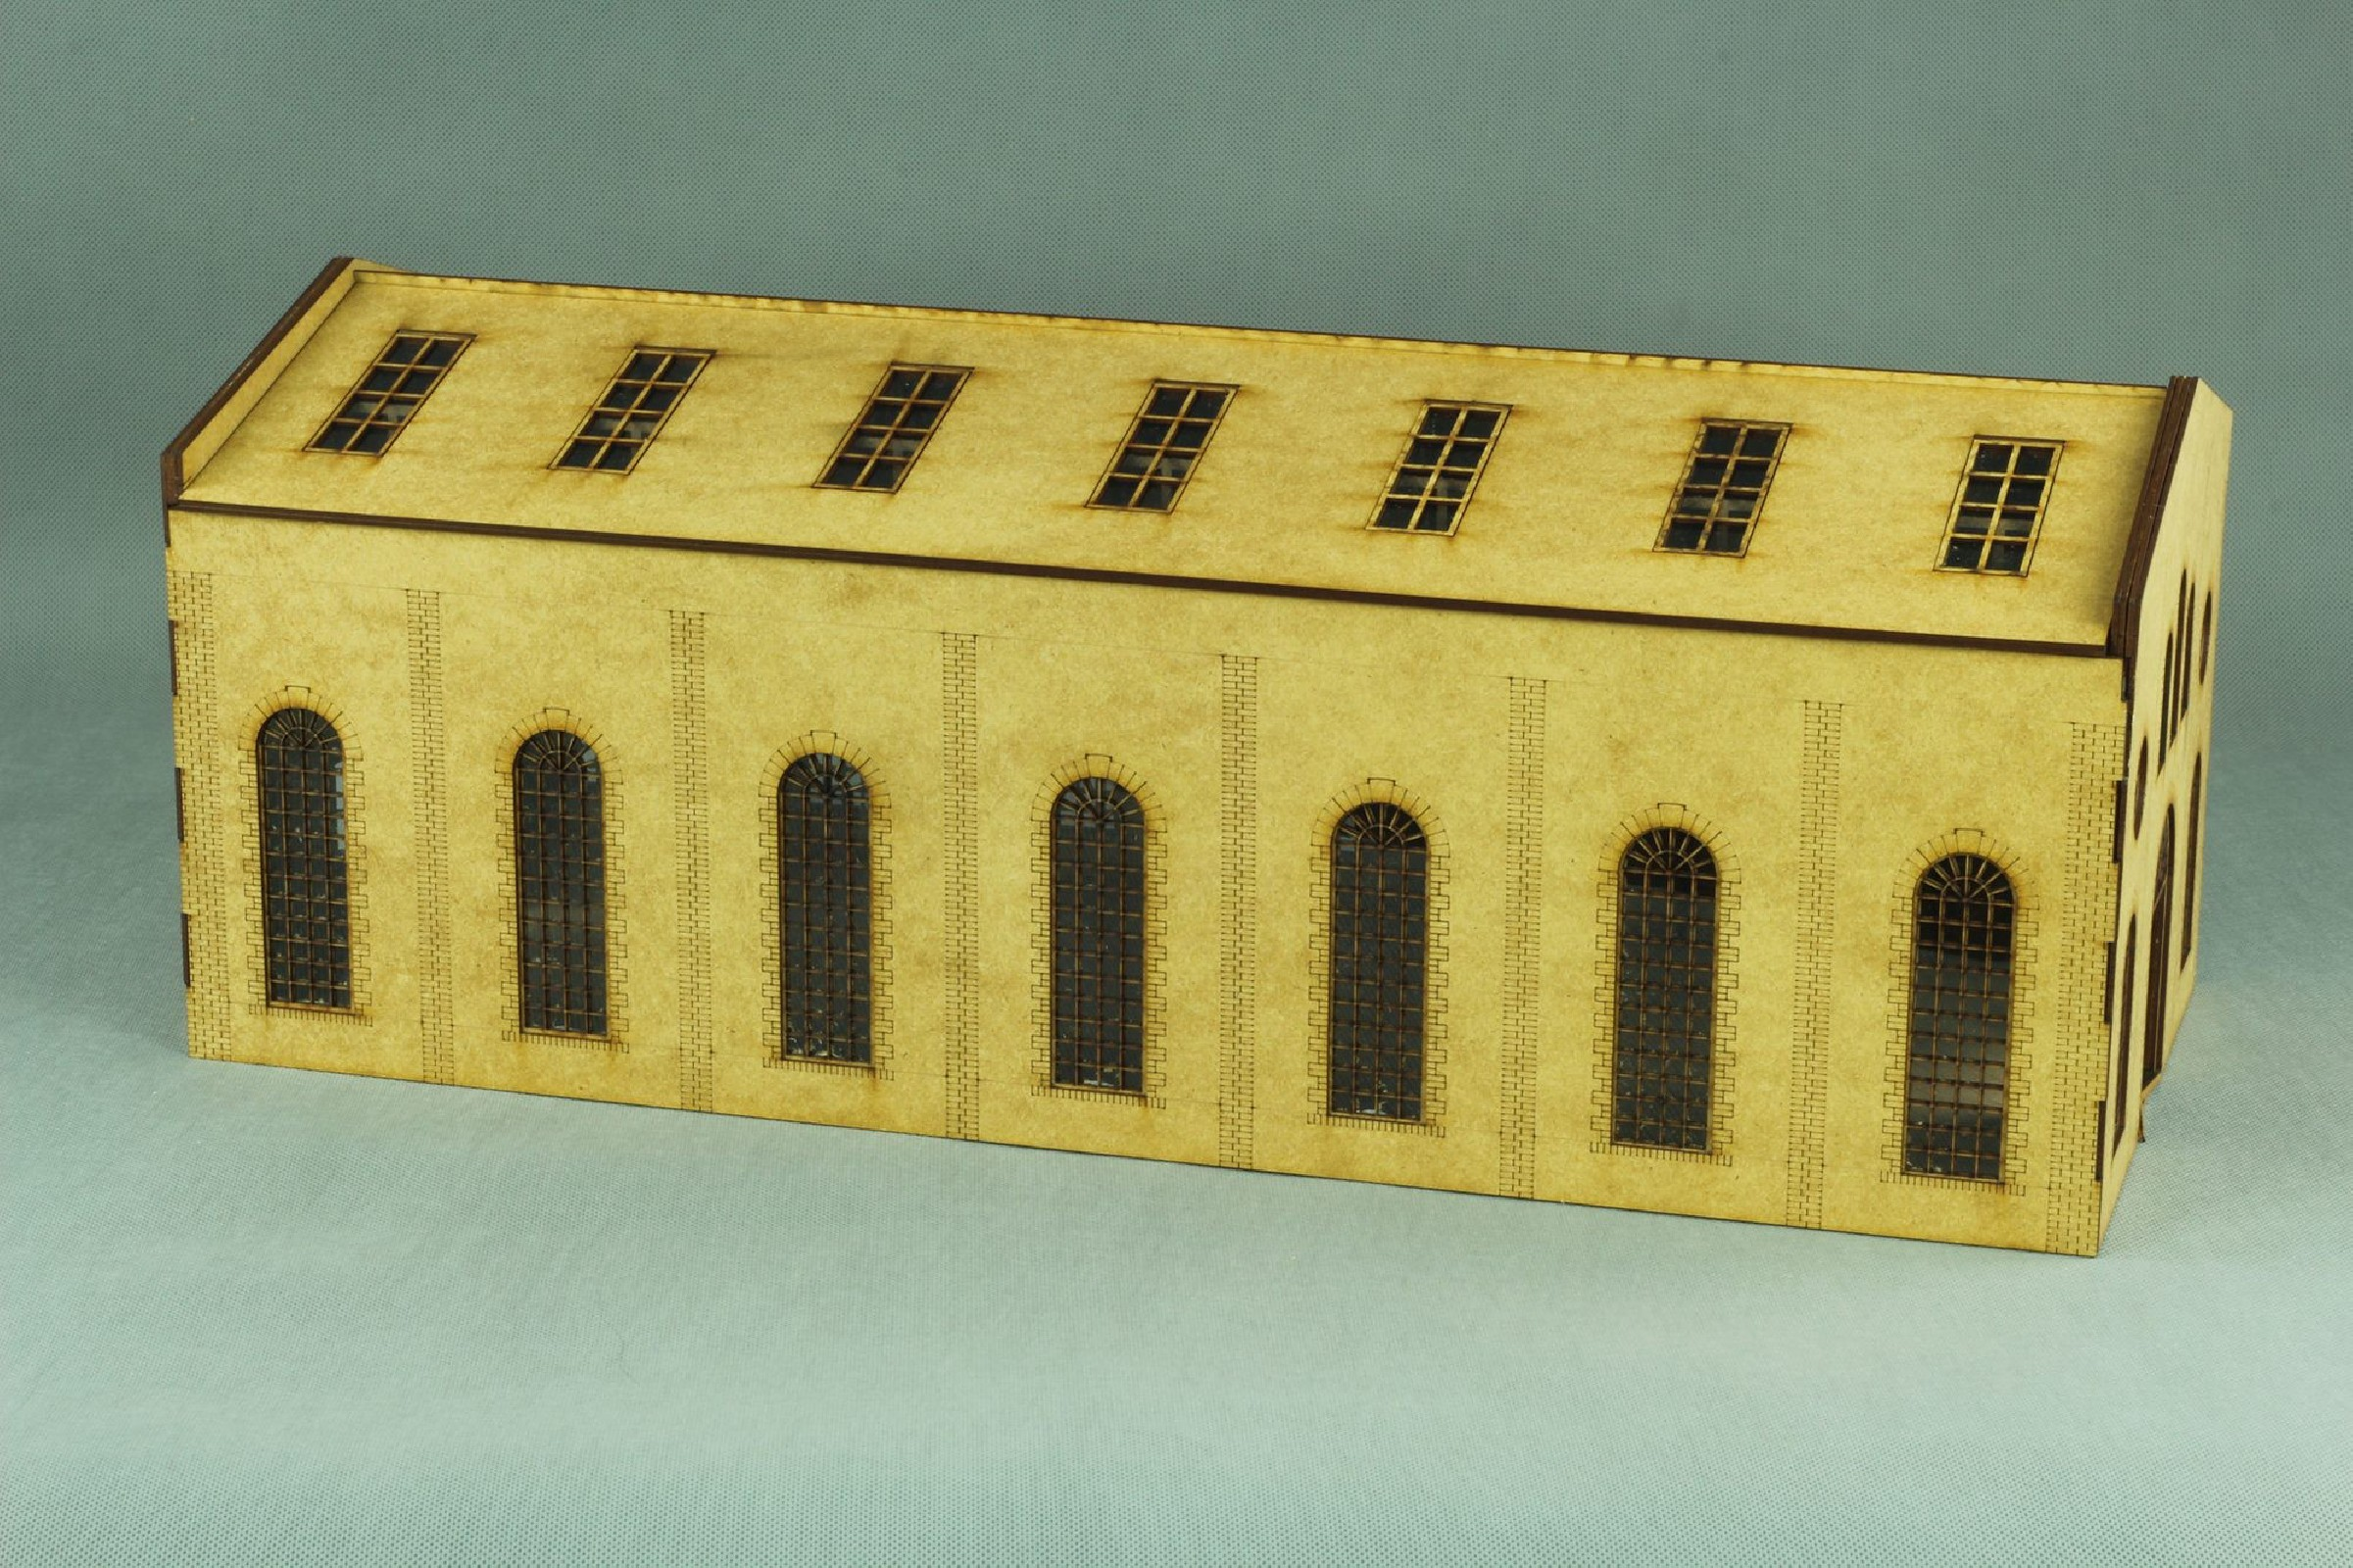 LARGE FACTORY - 28mm 3rd generation